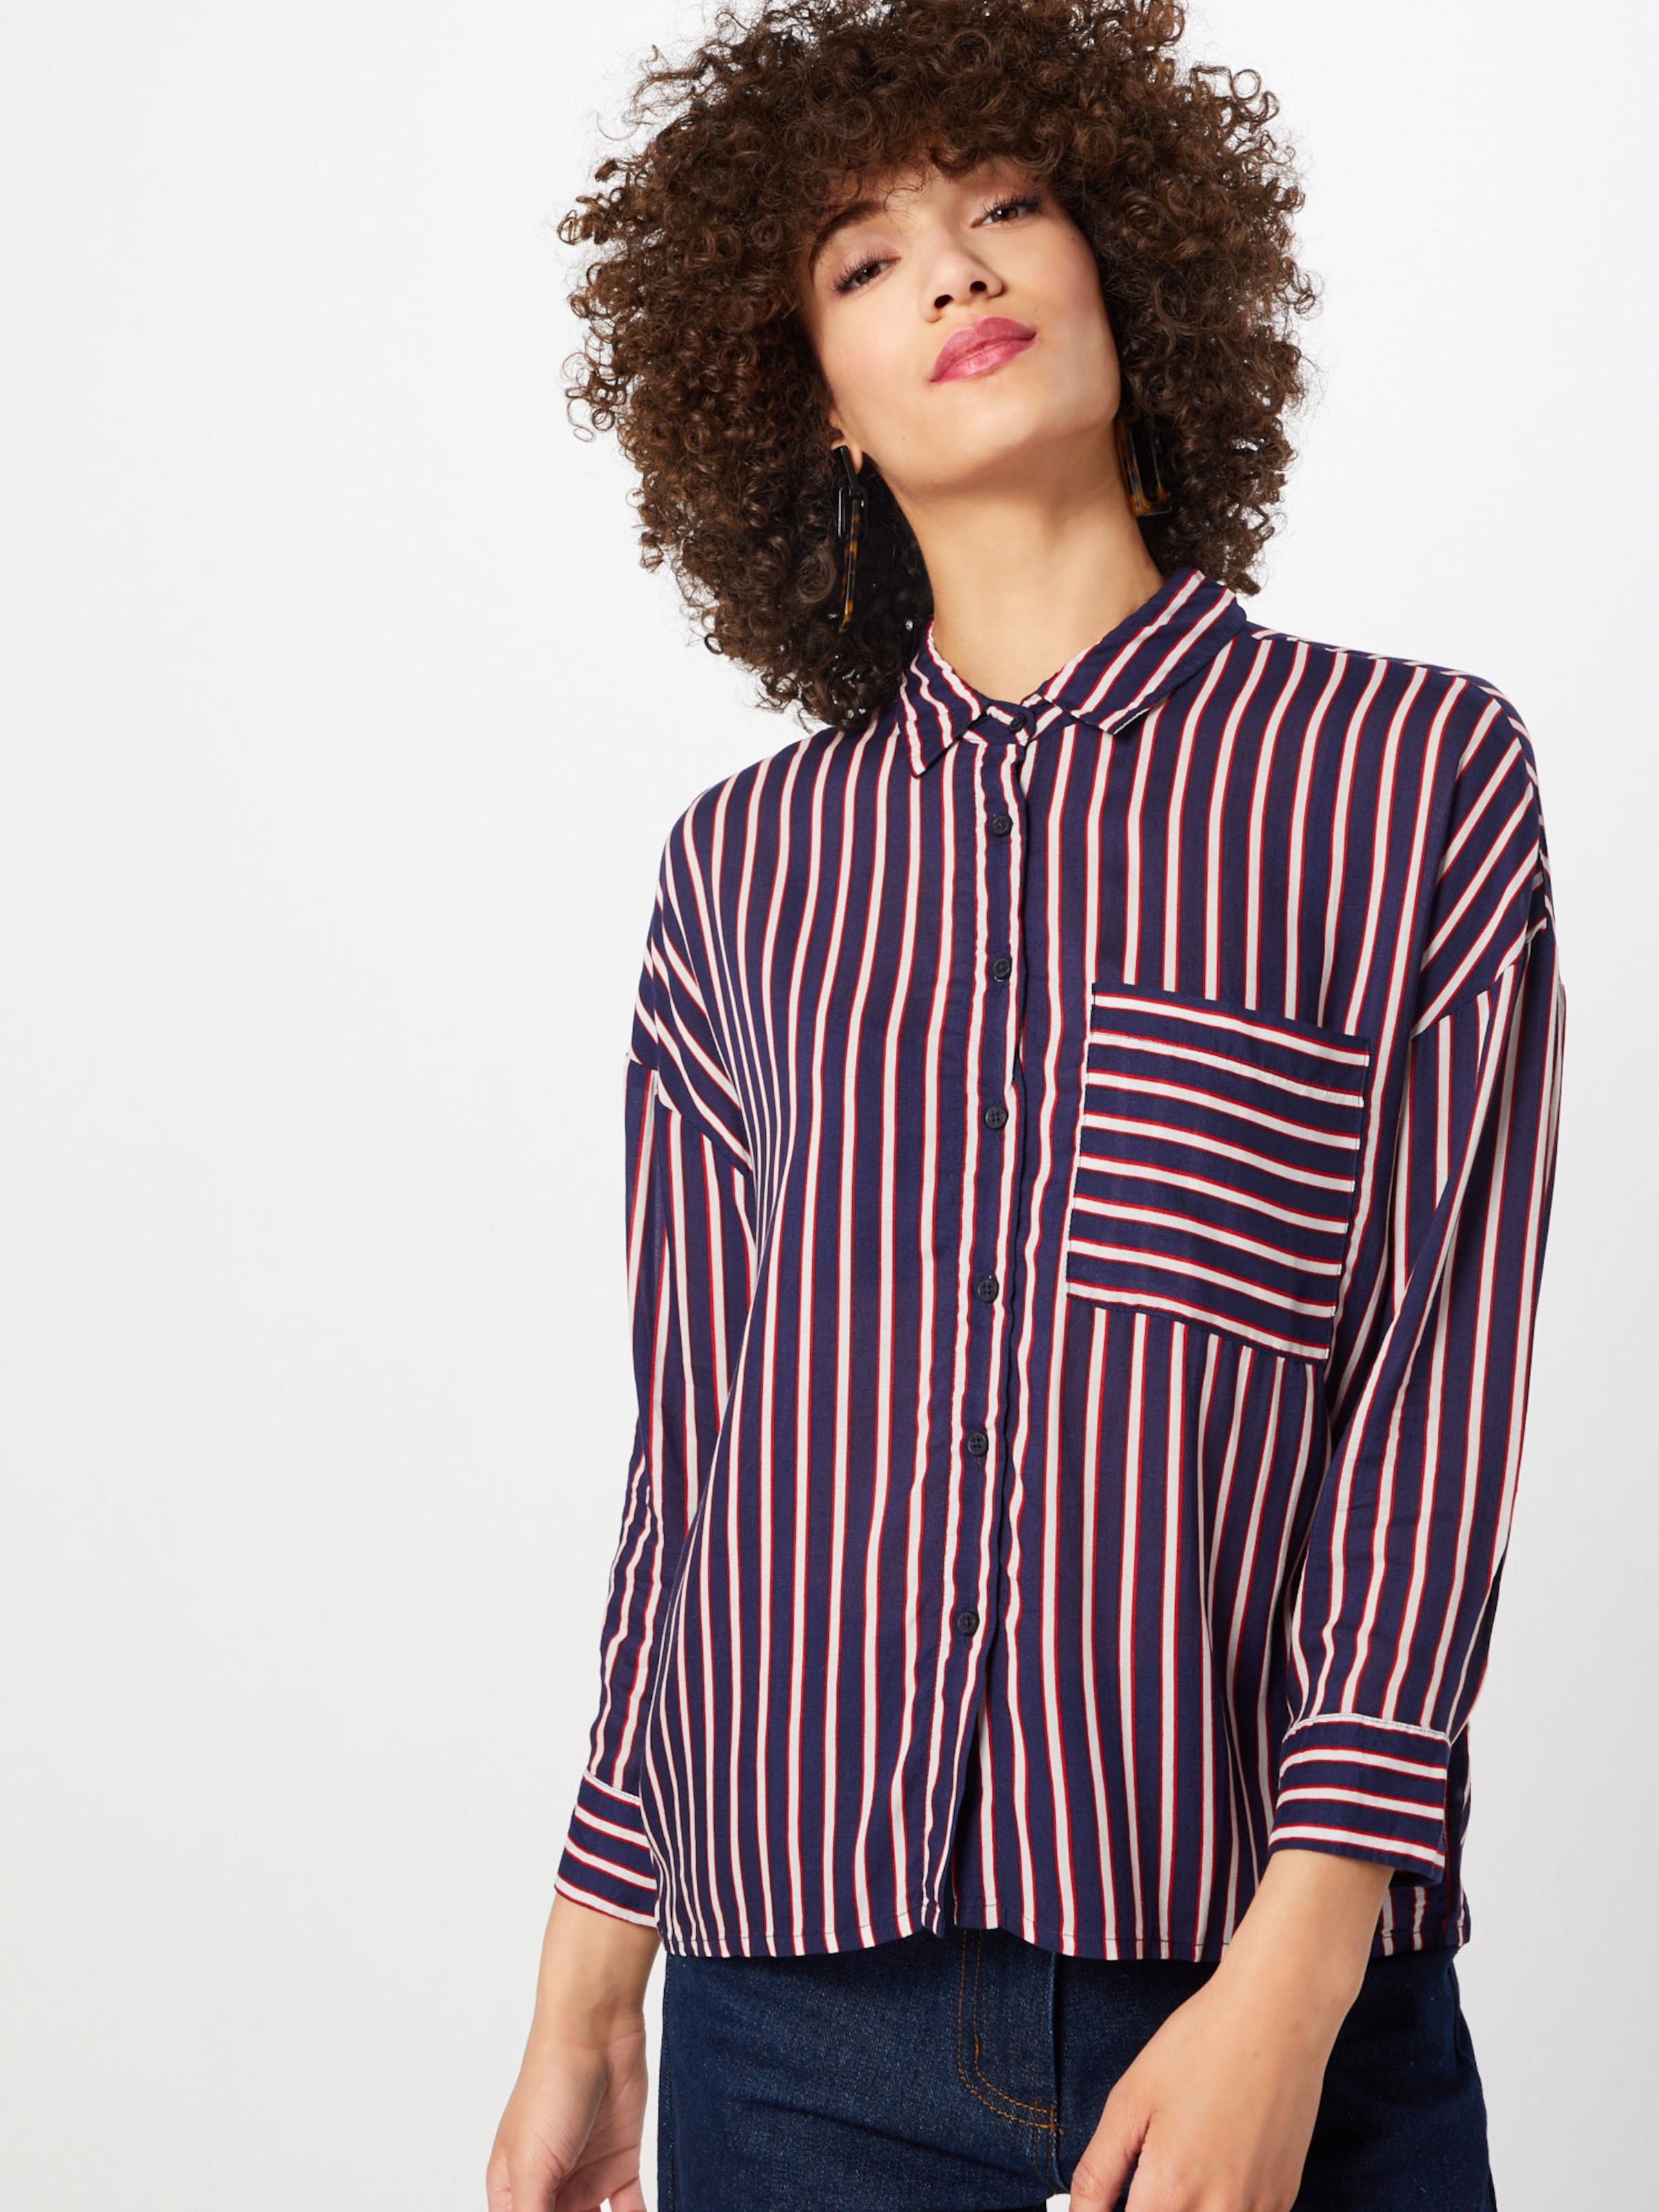 NavyWeiß Ltb Bluse Bluse Ltb In 'mifolo' 'mifolo' In 08knOwP